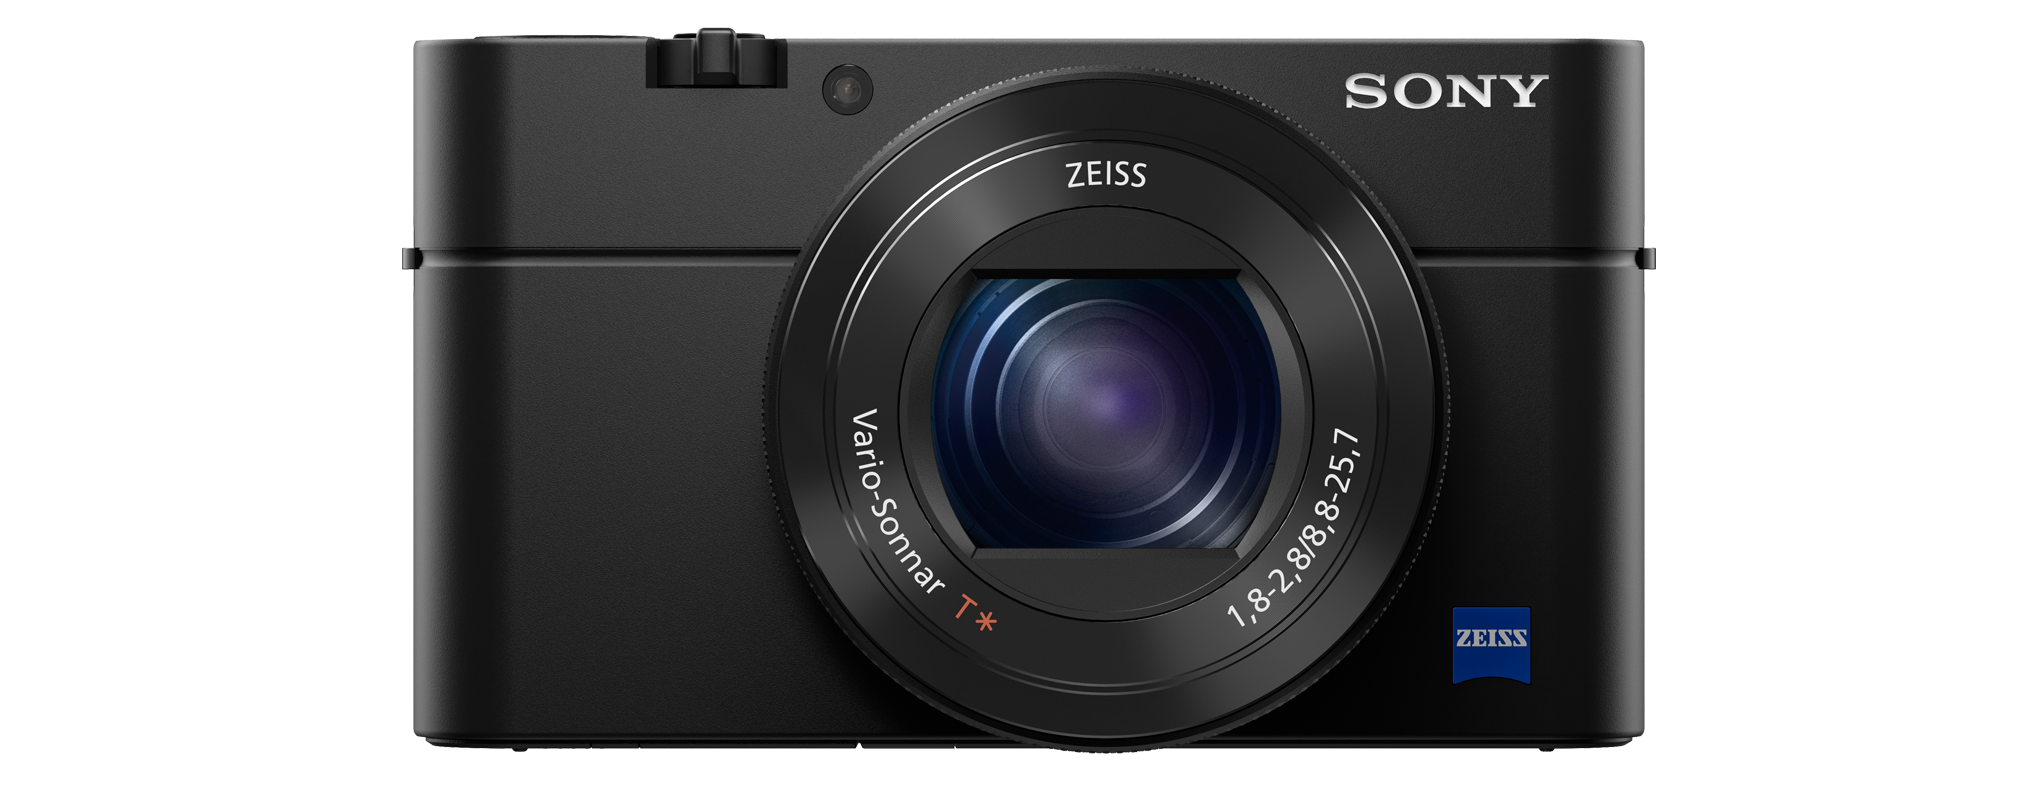 Sony DSC-RX100M4 Camera Drivers for Windows 7